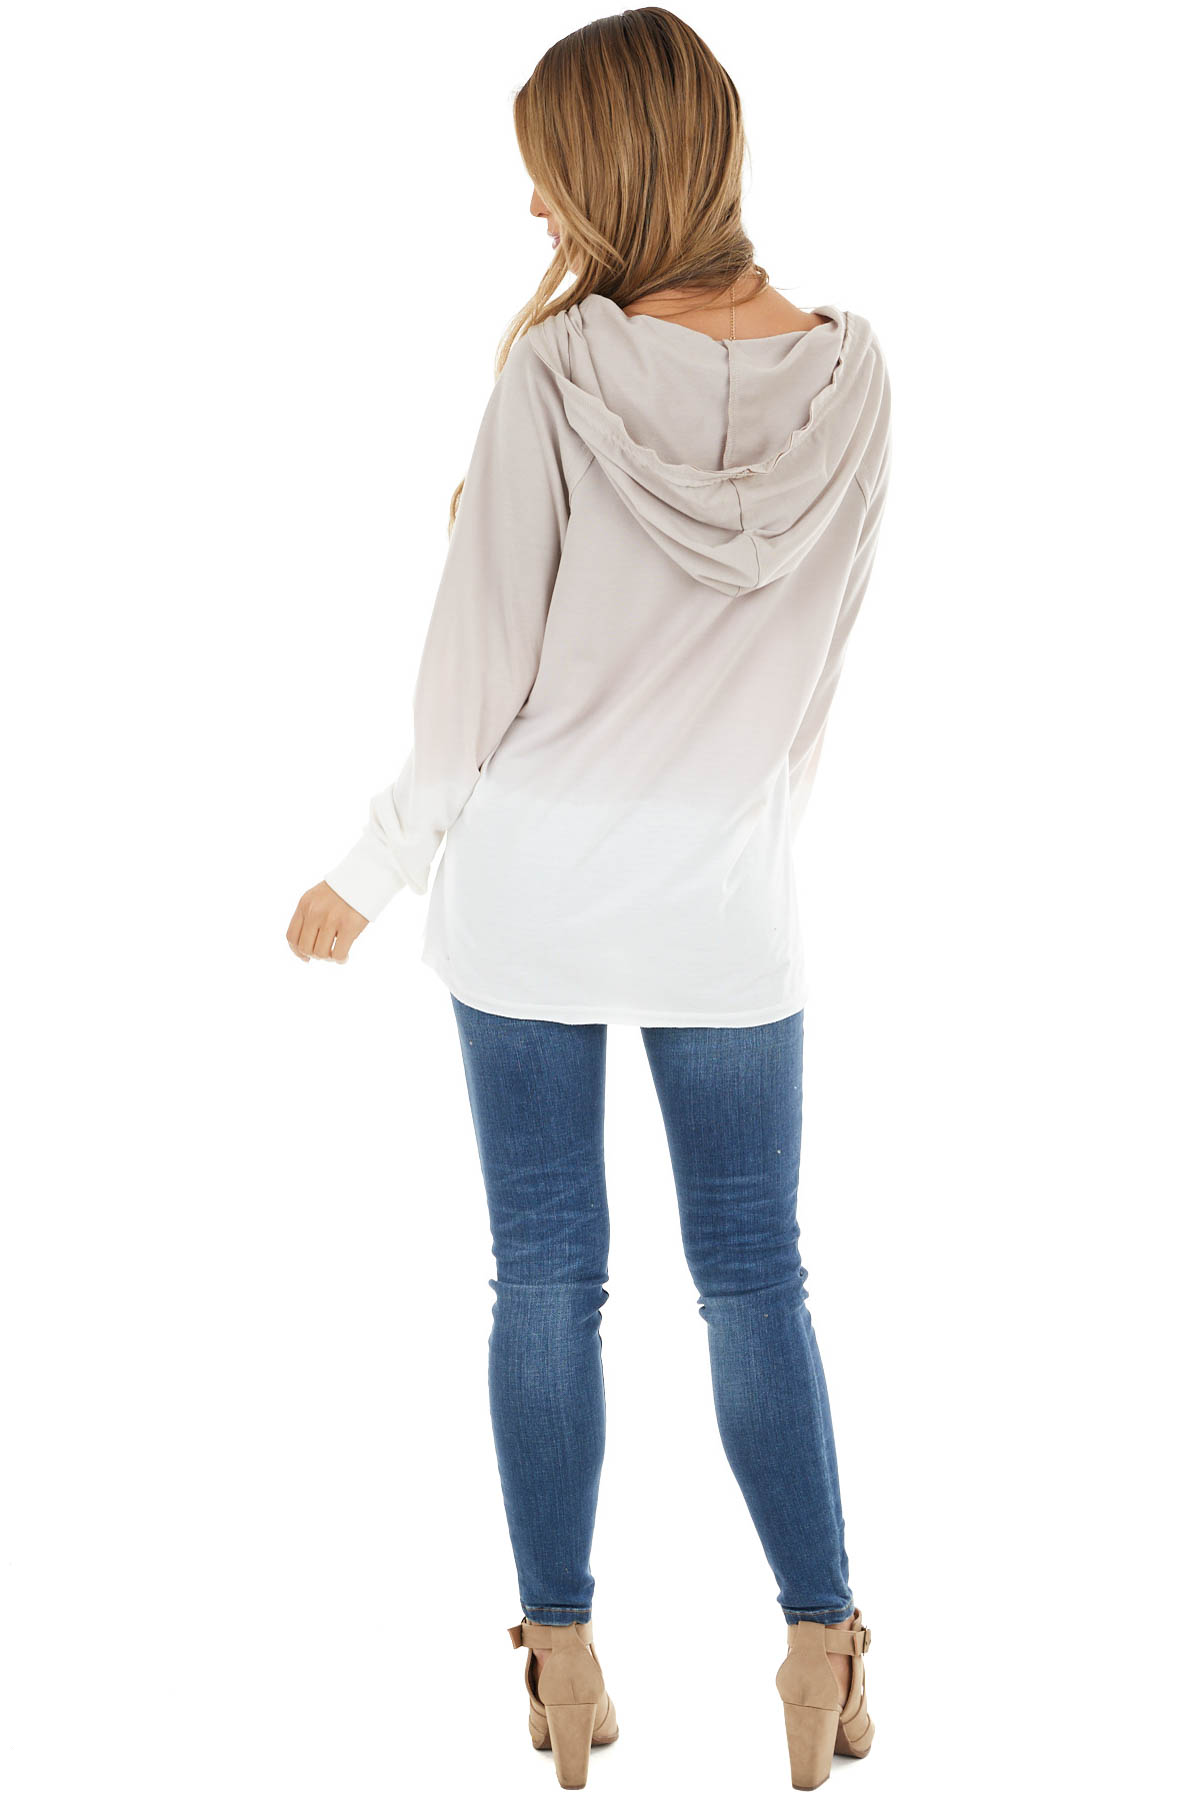 Dusty Rose Ombre V Neck Drawstring Hoodie with Pouch